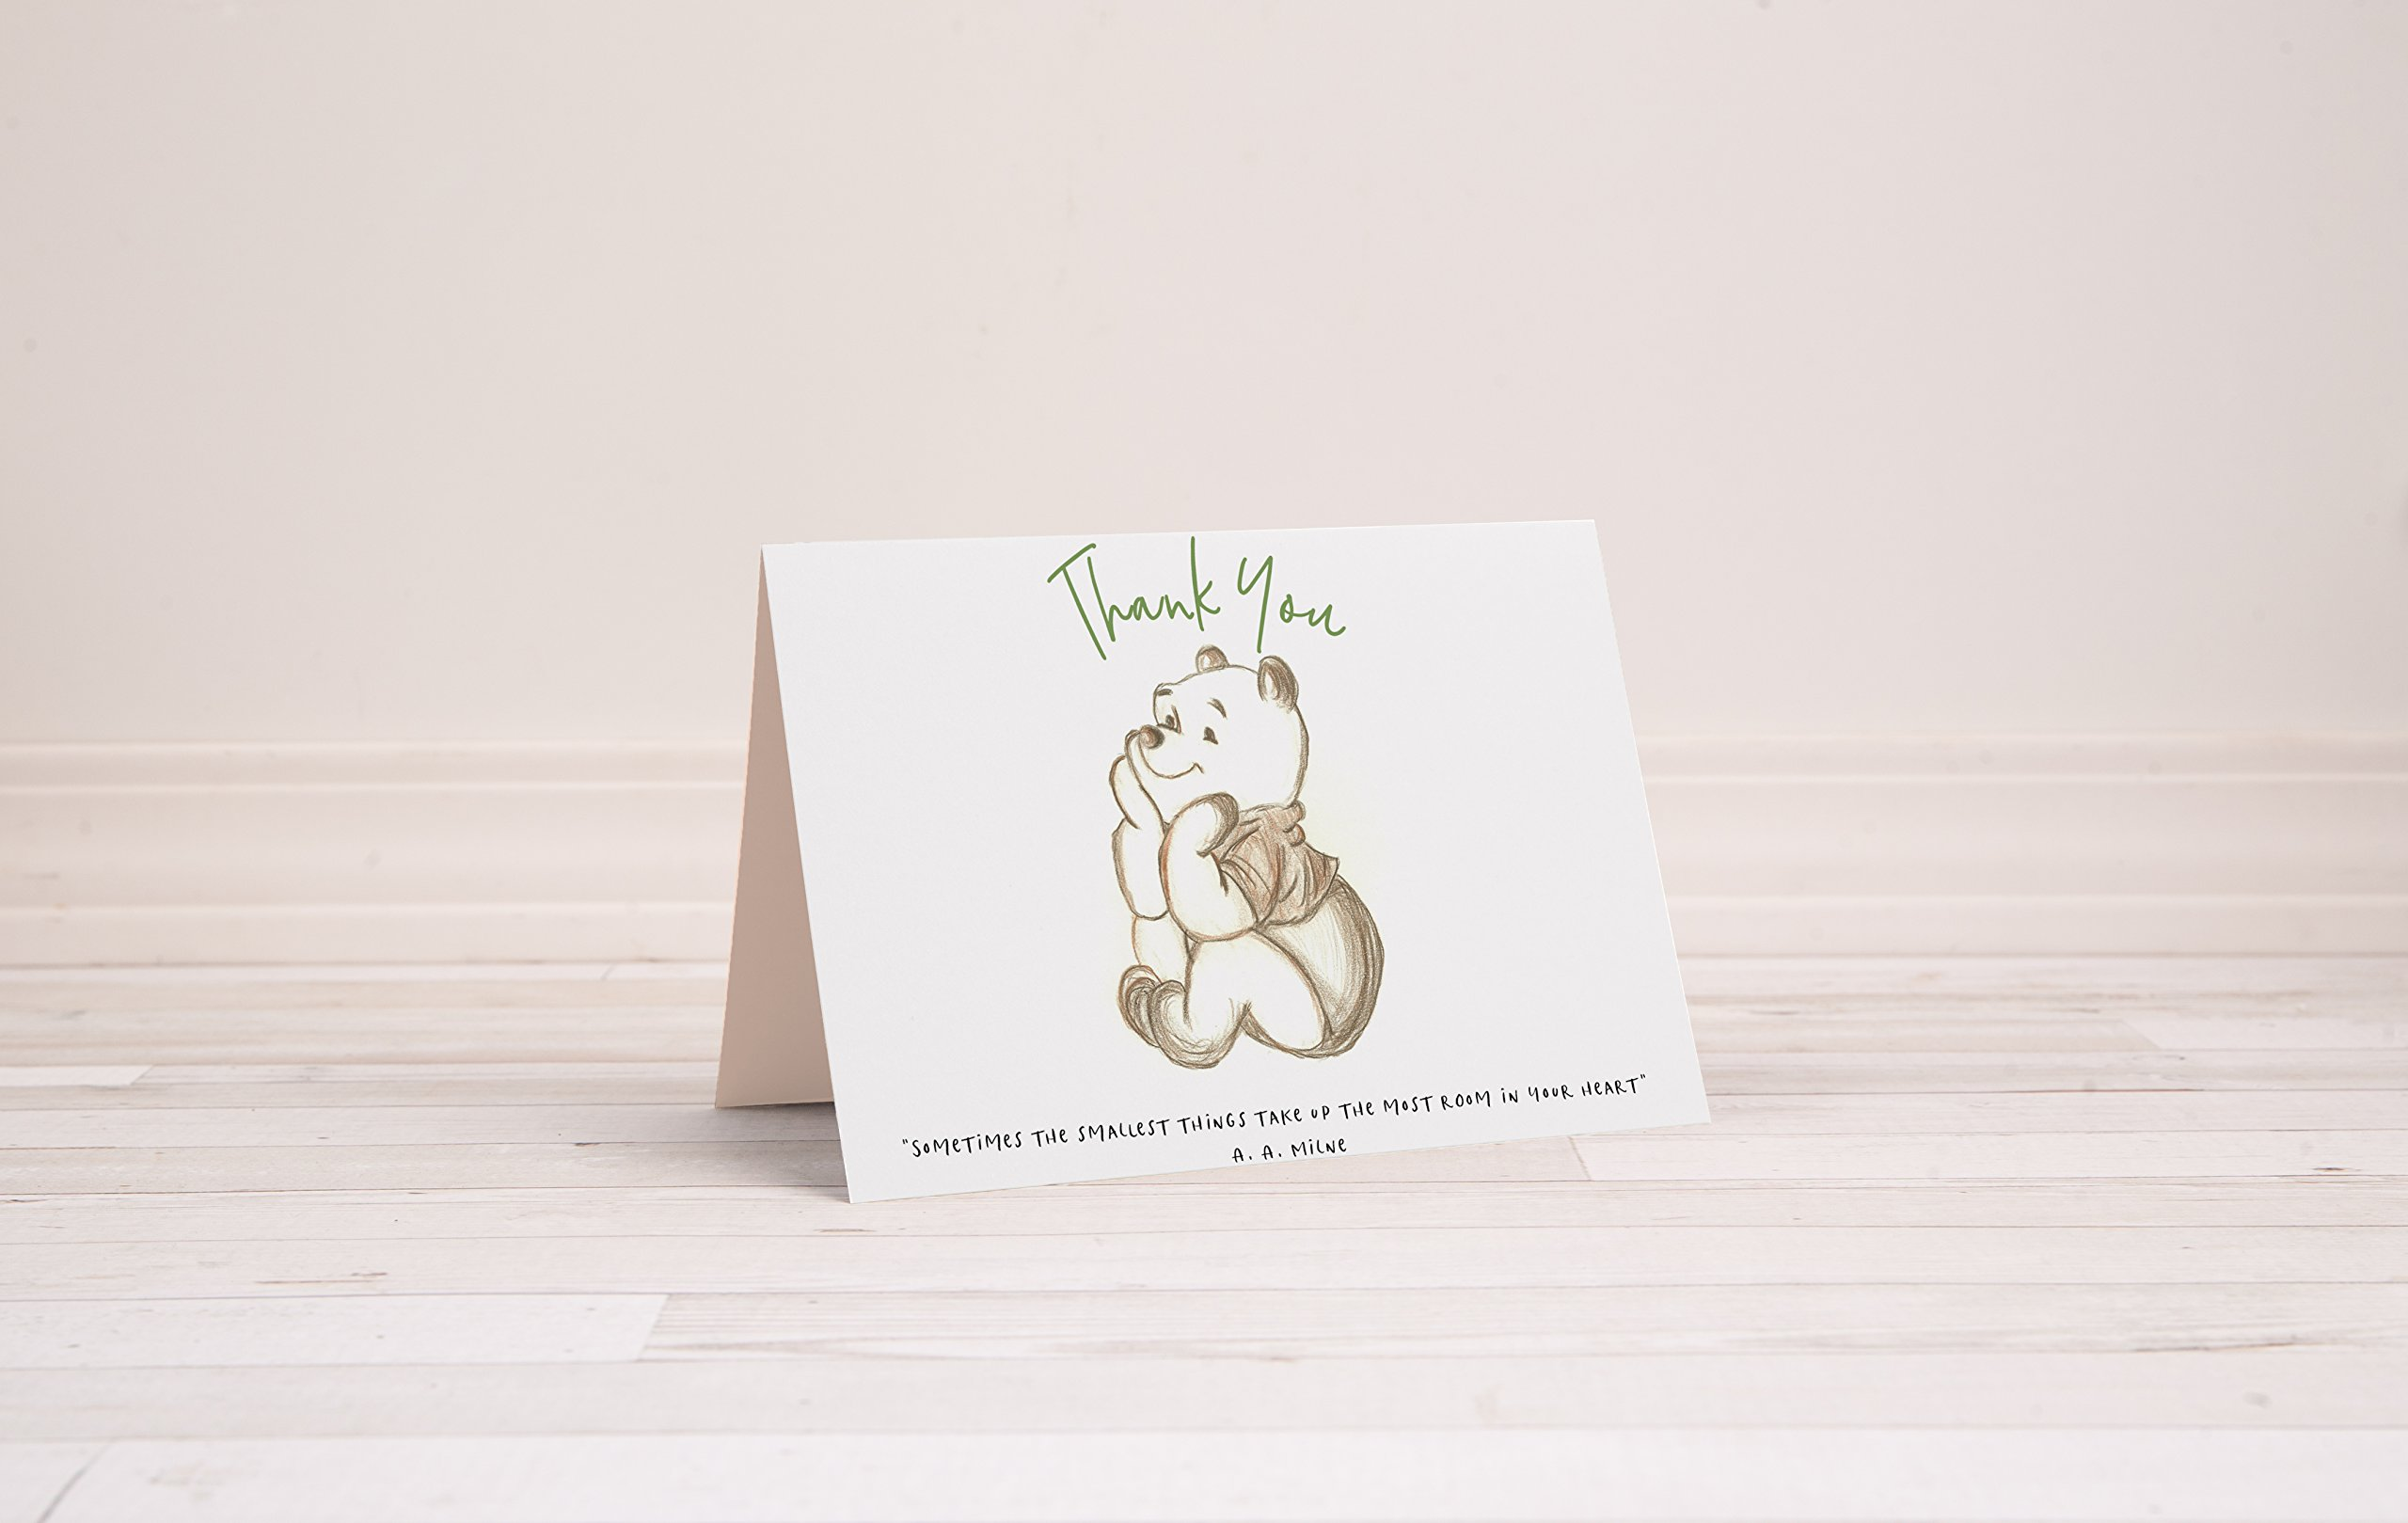 Winnie The Pooh Thank You Notes, 5.5 Inches by 4 Inches, Envelopes Included